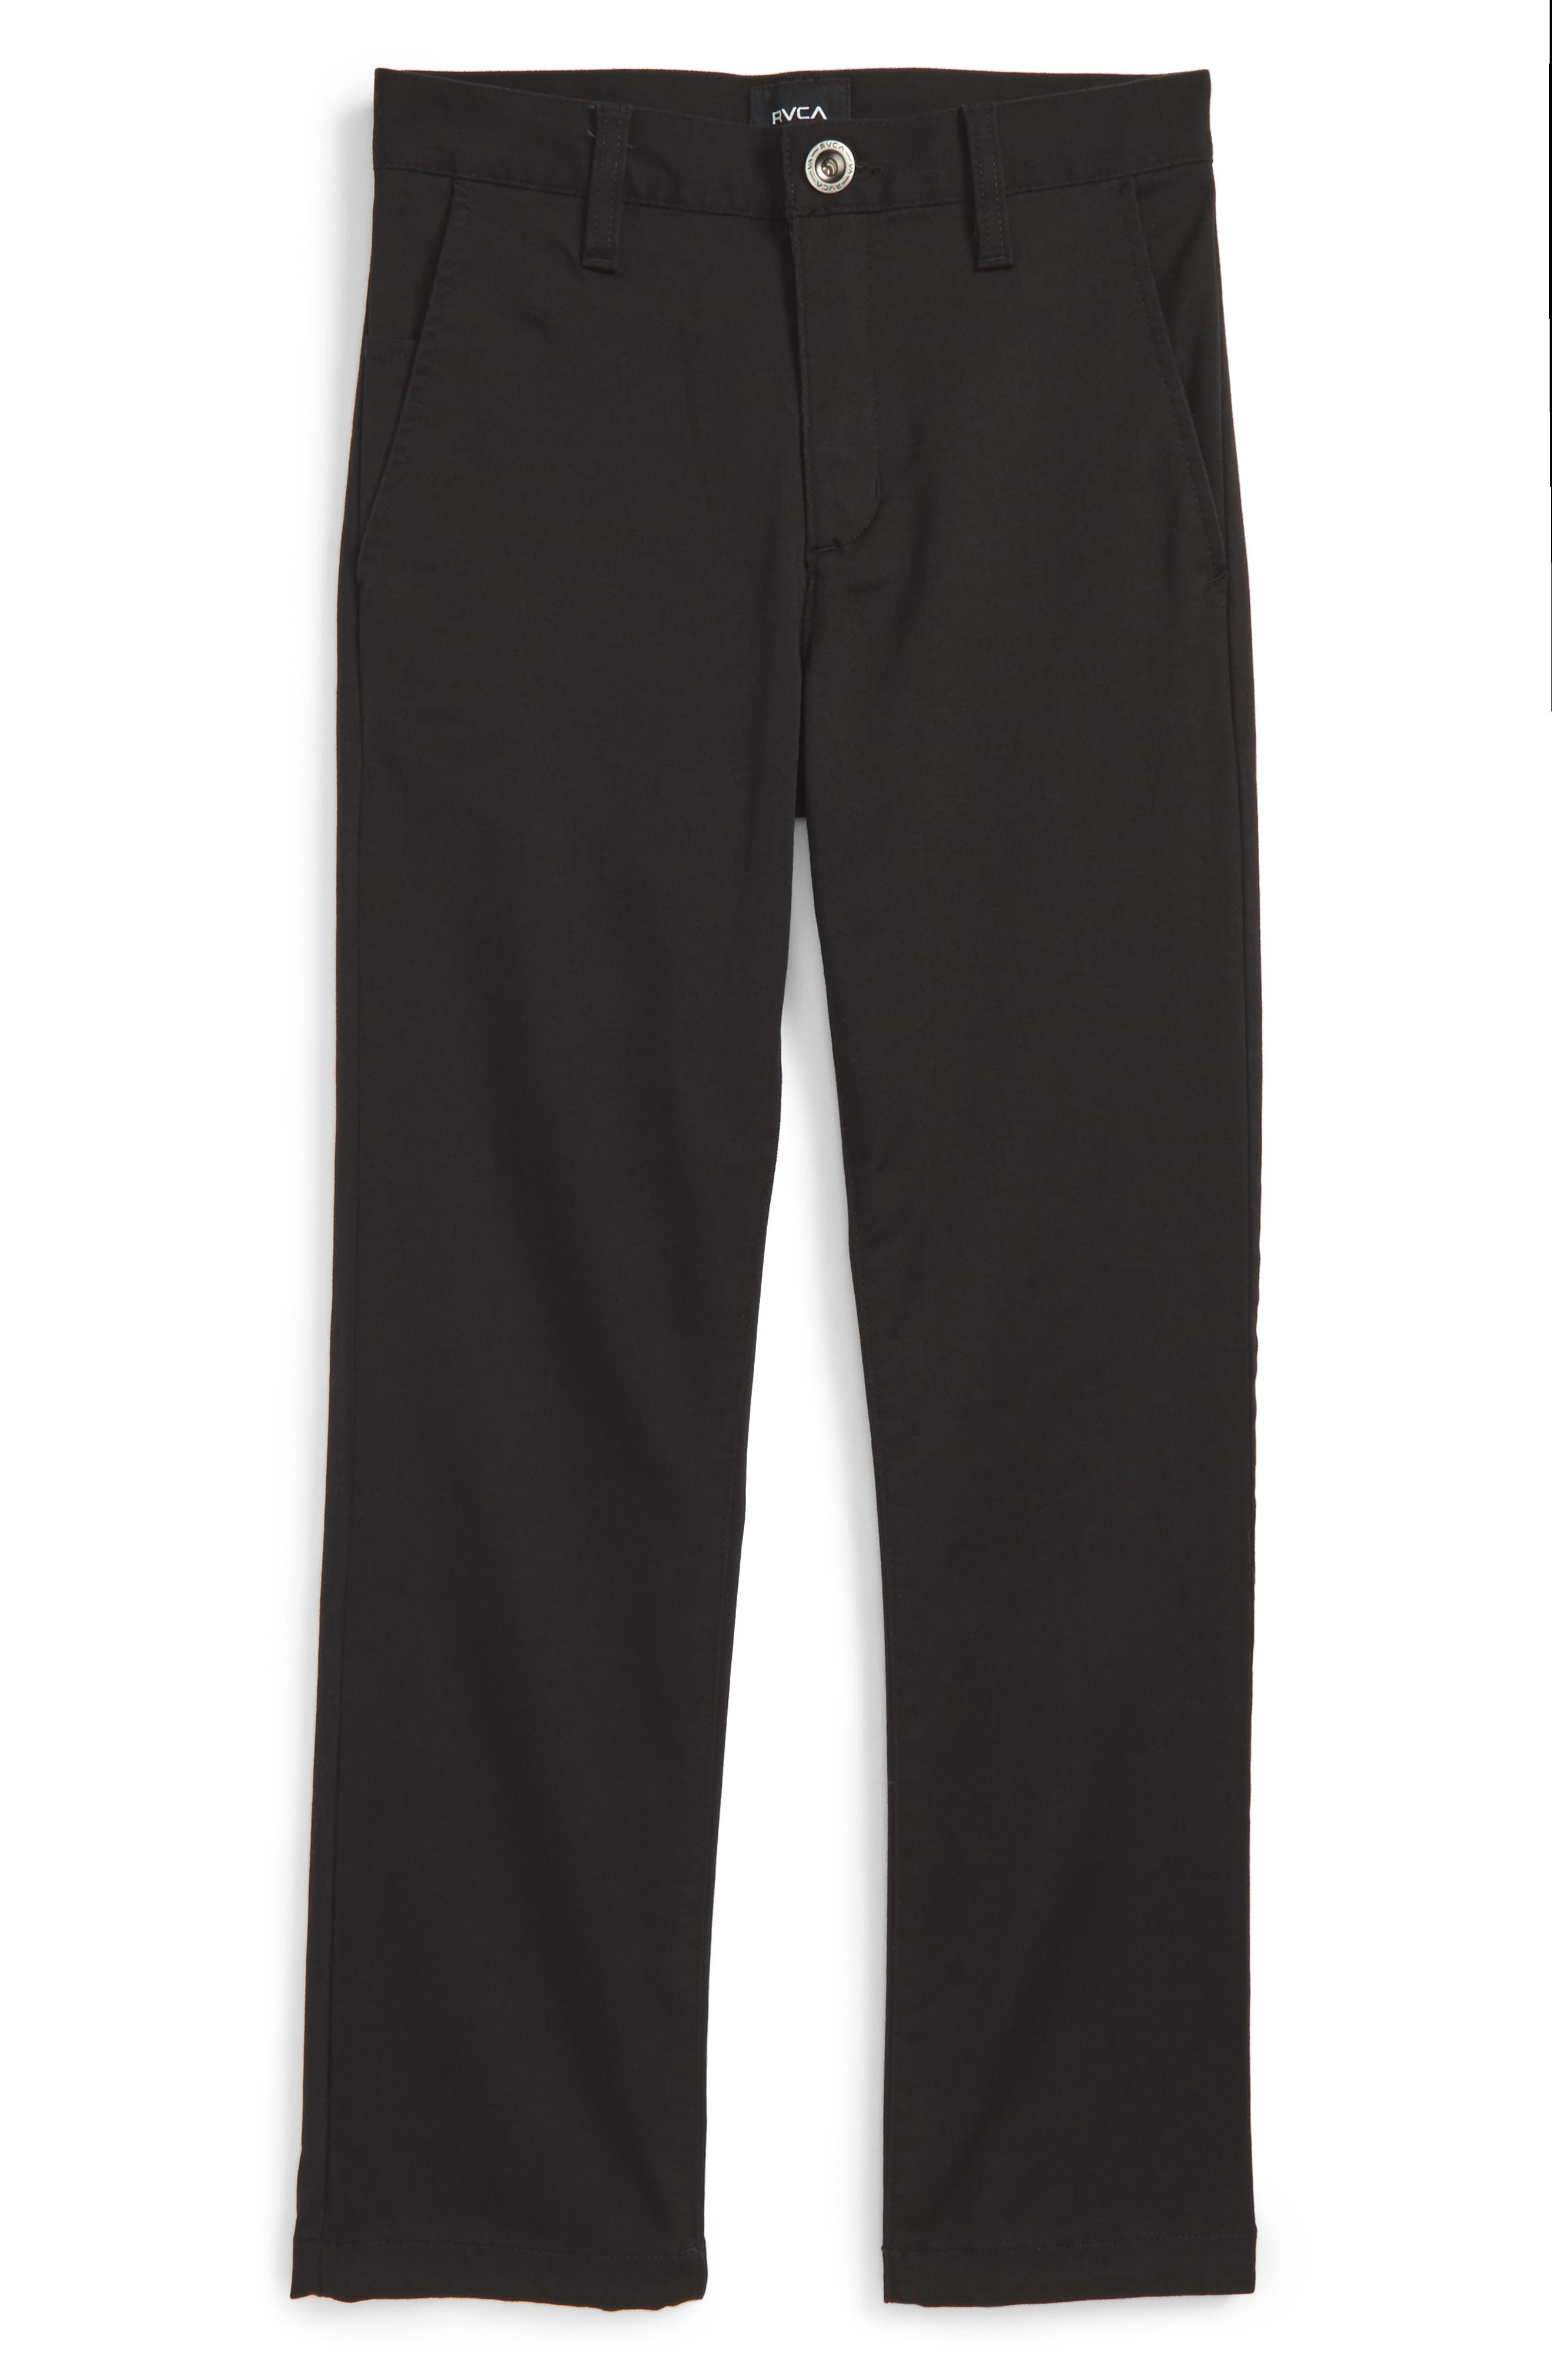 'Weekday' Stretch Chinos,                             Alternate thumbnail 7, color,